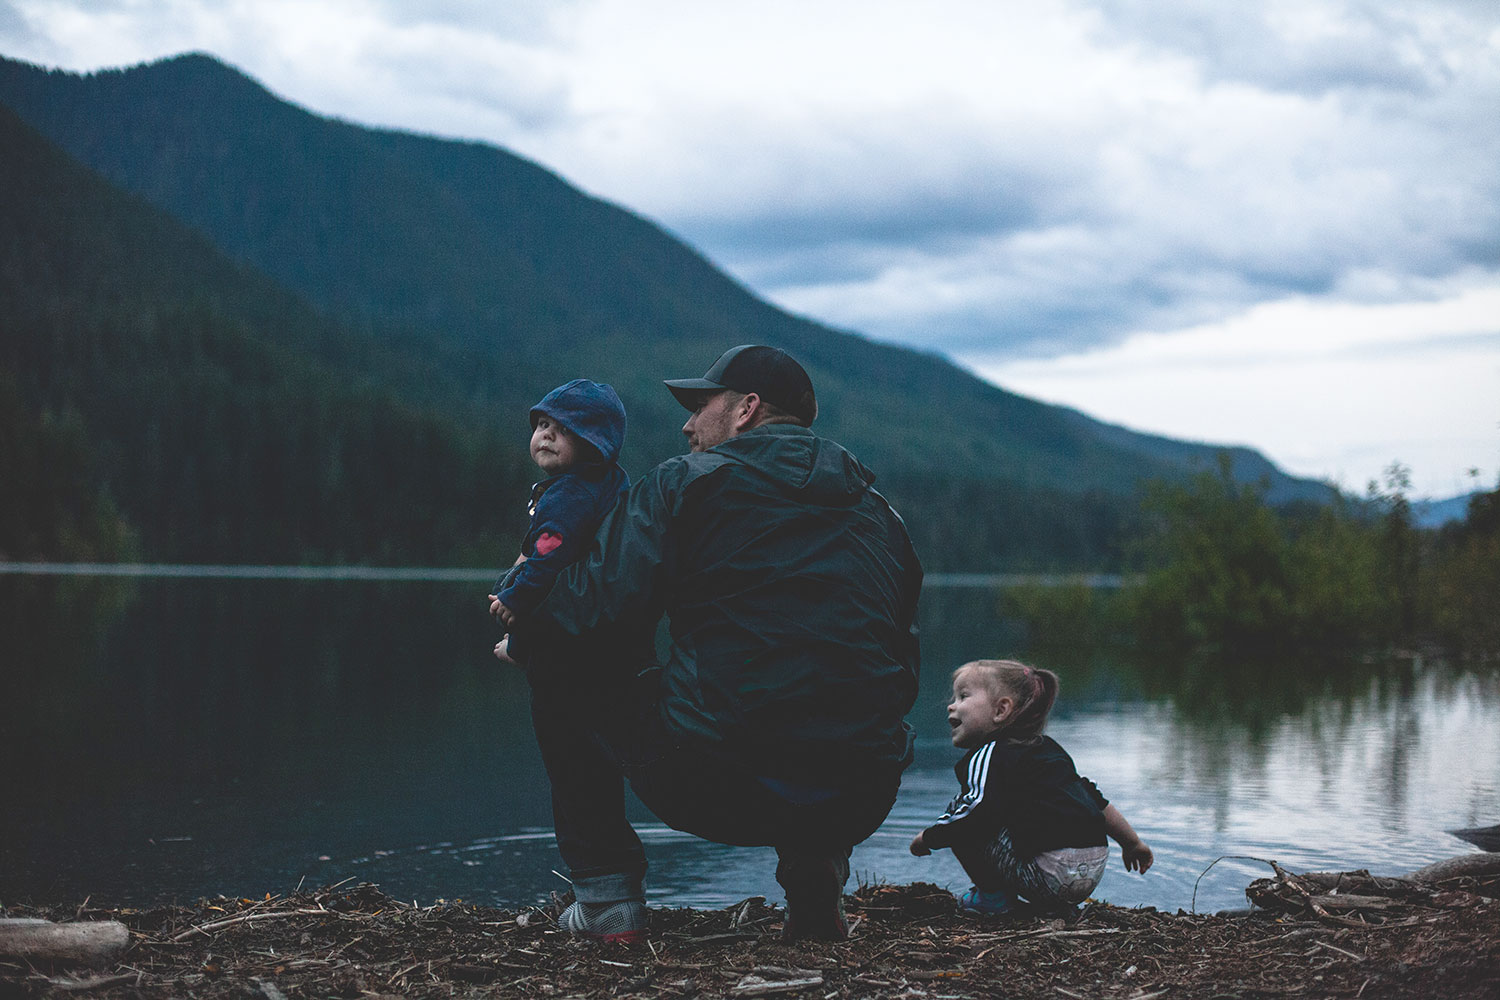 Hartman Law are experts in Ontario child custody laws. Call us if this topic applies to your family law situation: 416-316-2234.